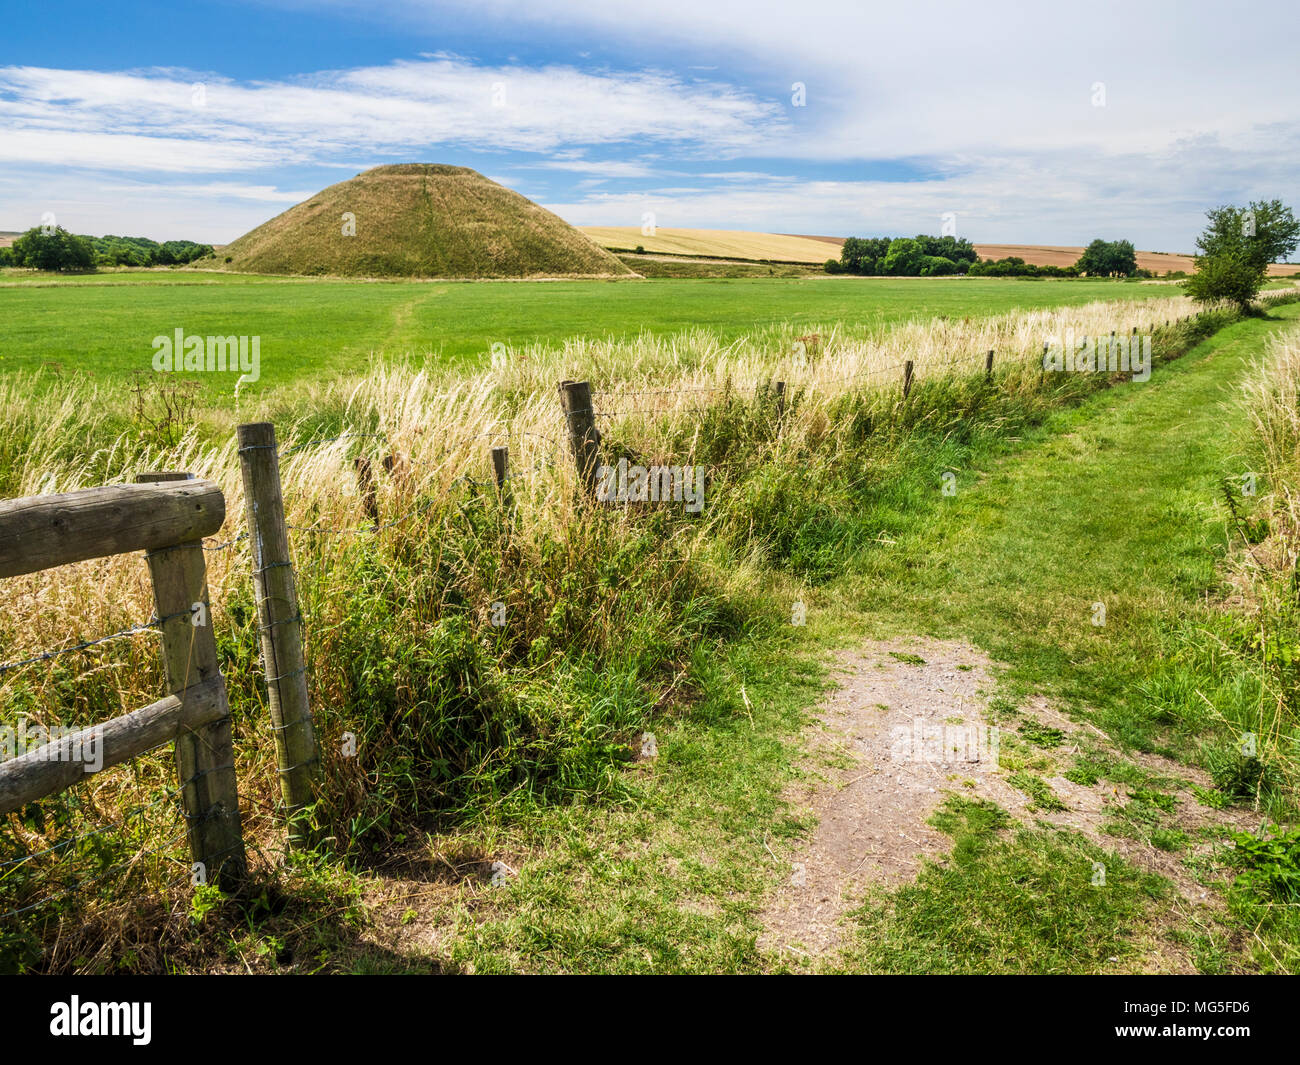 A sunny summer's day at Silbury Hill in Wiltshire. Stock Photo